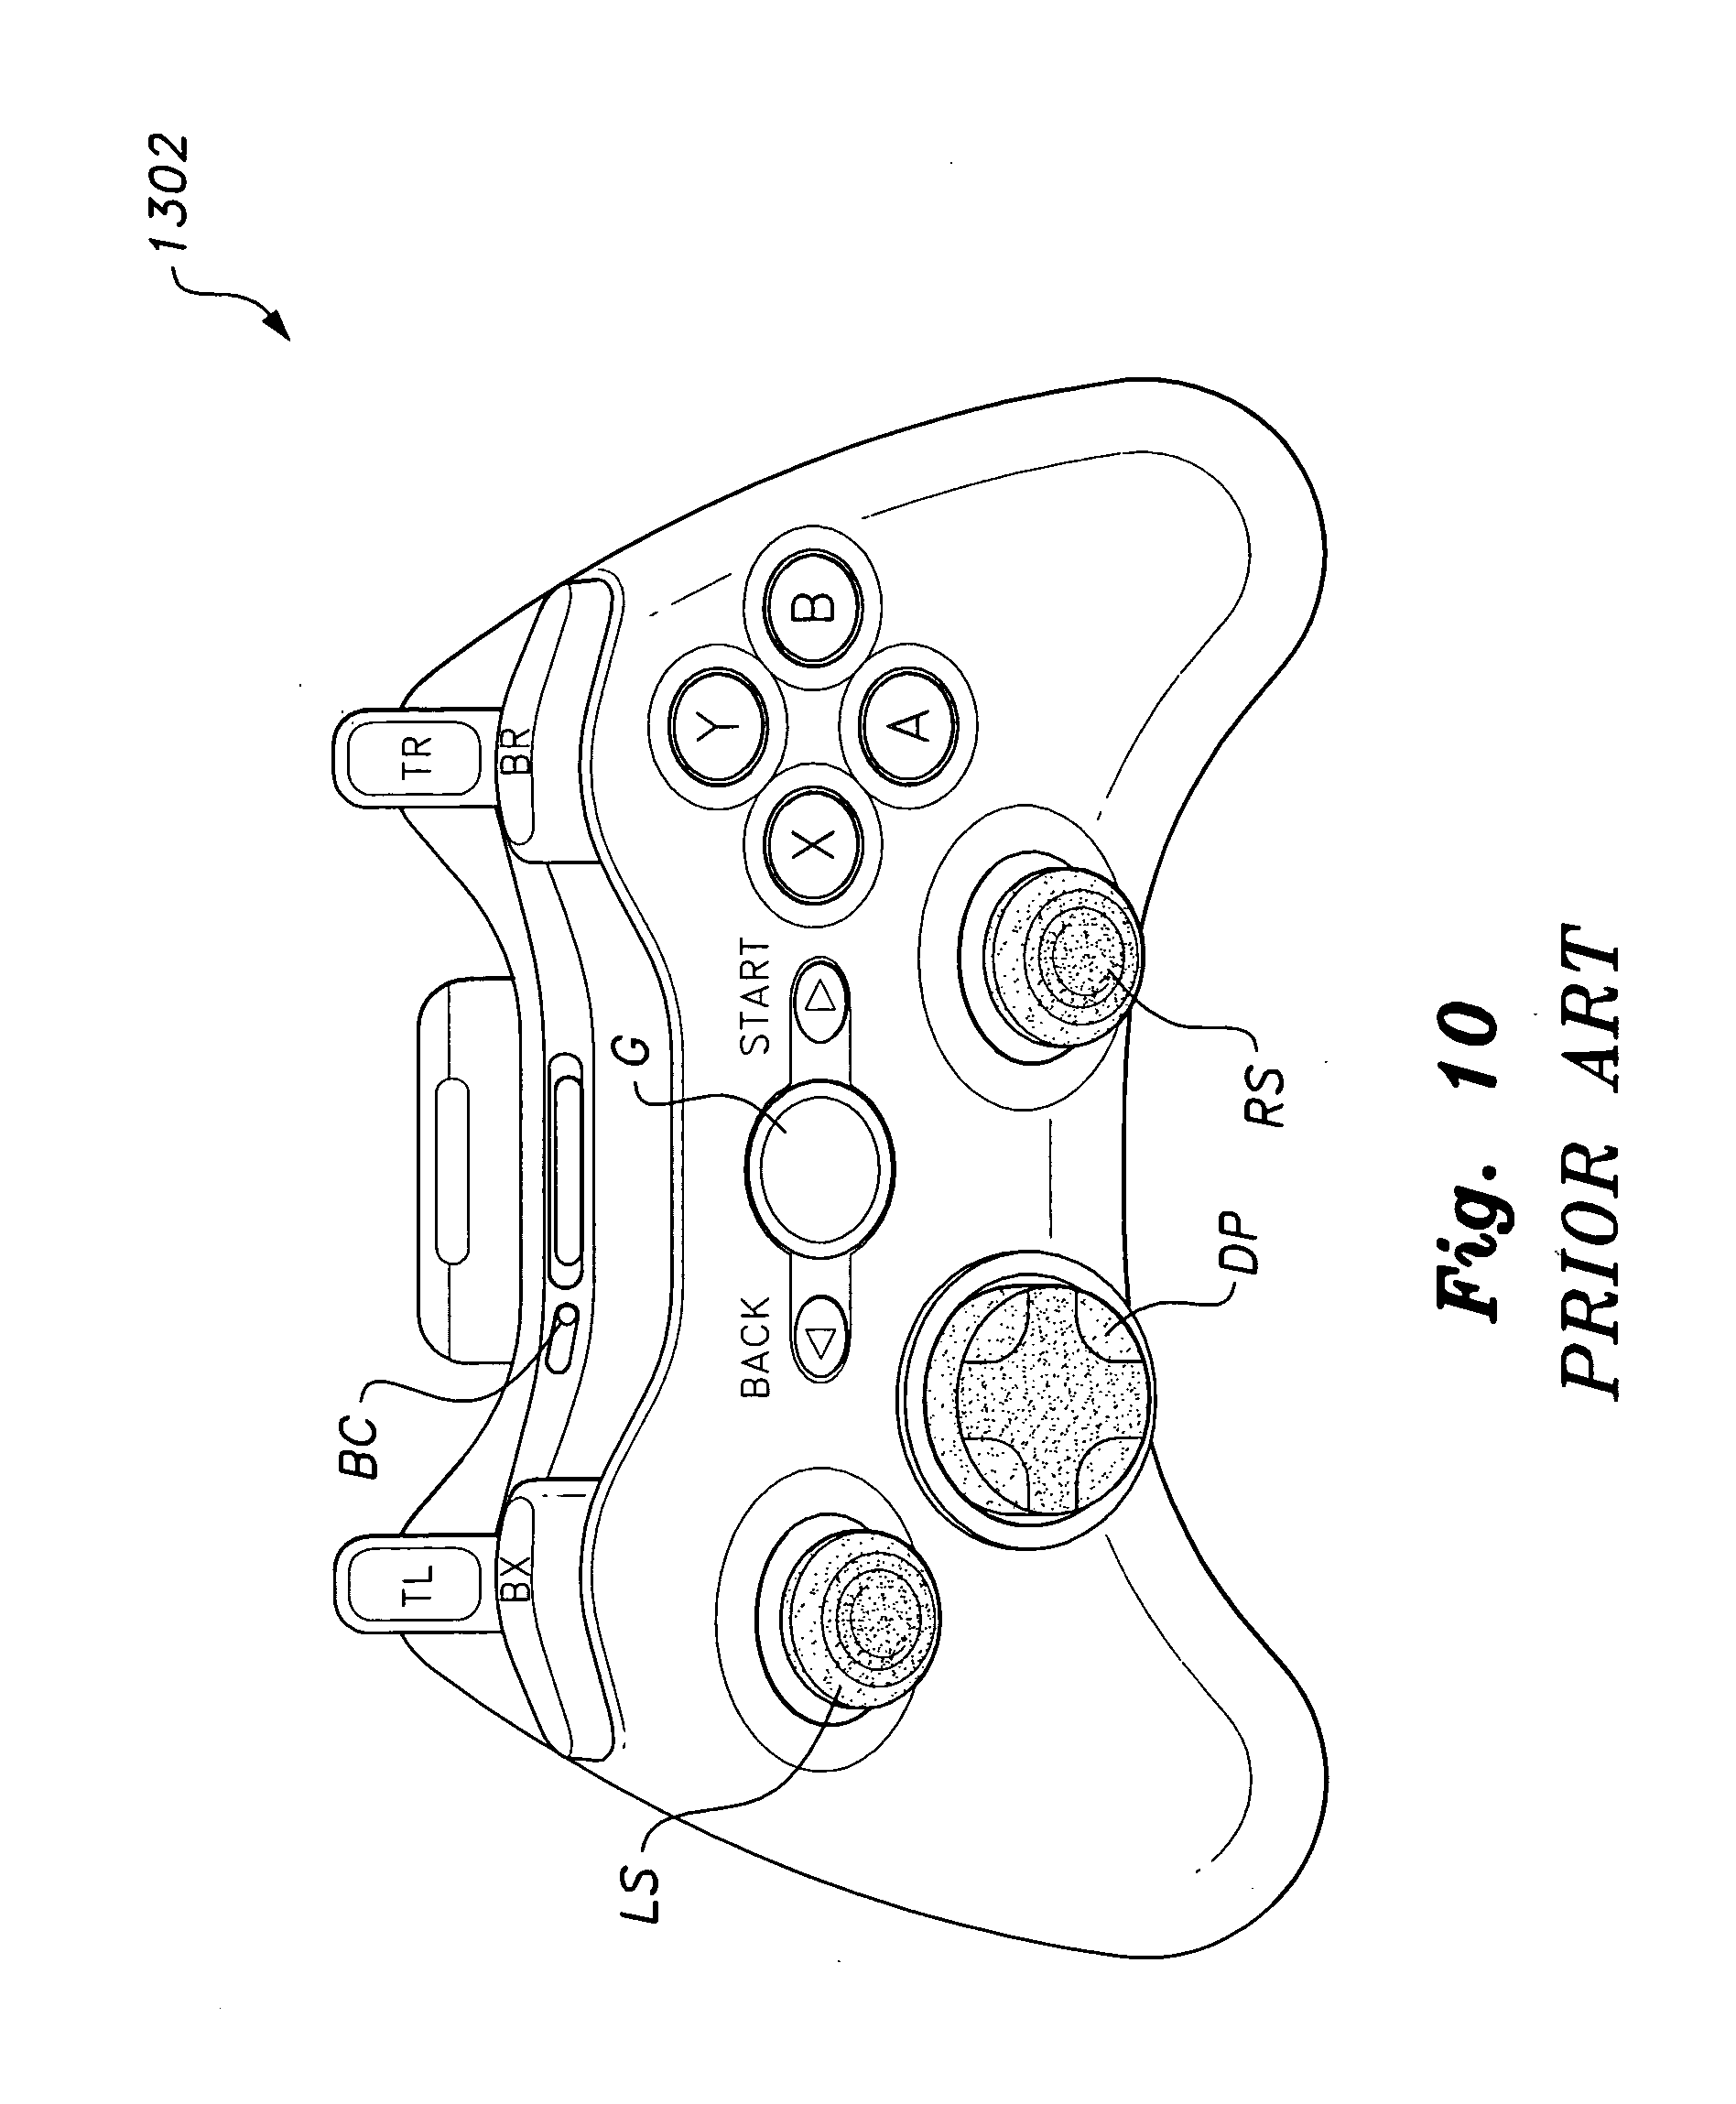 7a1 Xbox Wireless Controller Diagram Wiring Library